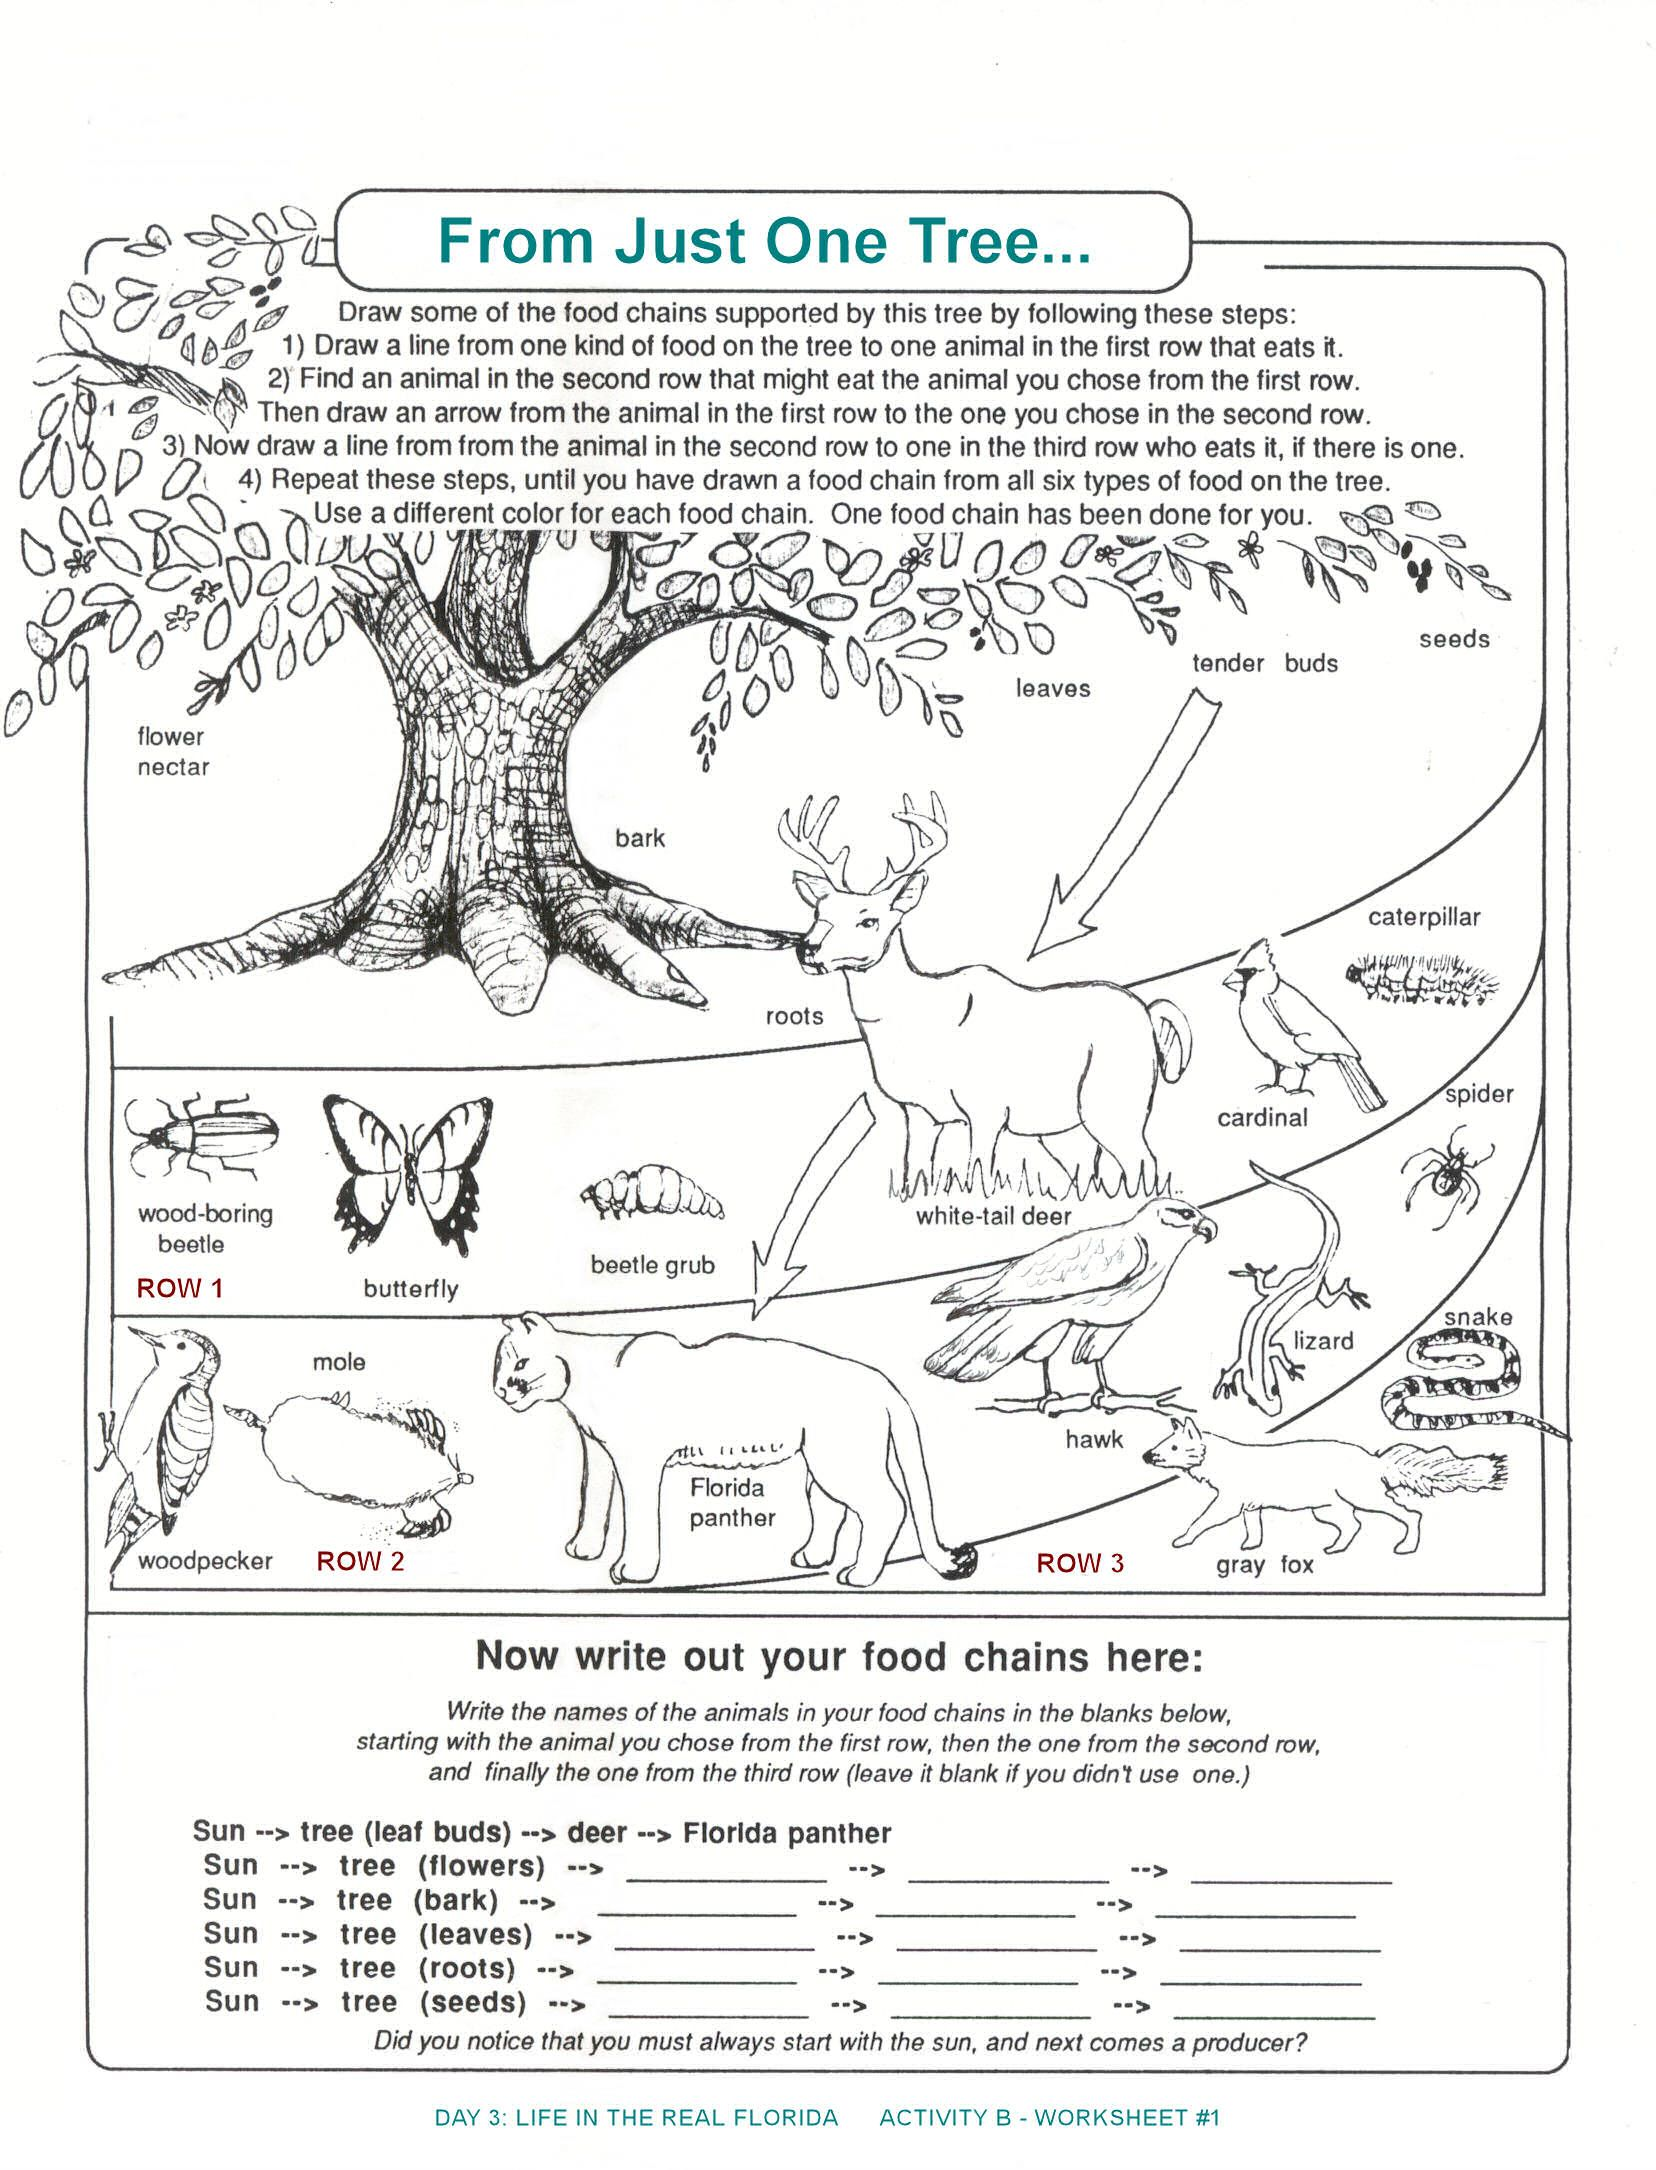 Uncategorized Food Chain Worksheet decomposers worksheets for kids archbold biological station florida food chain worksheet from just one tree